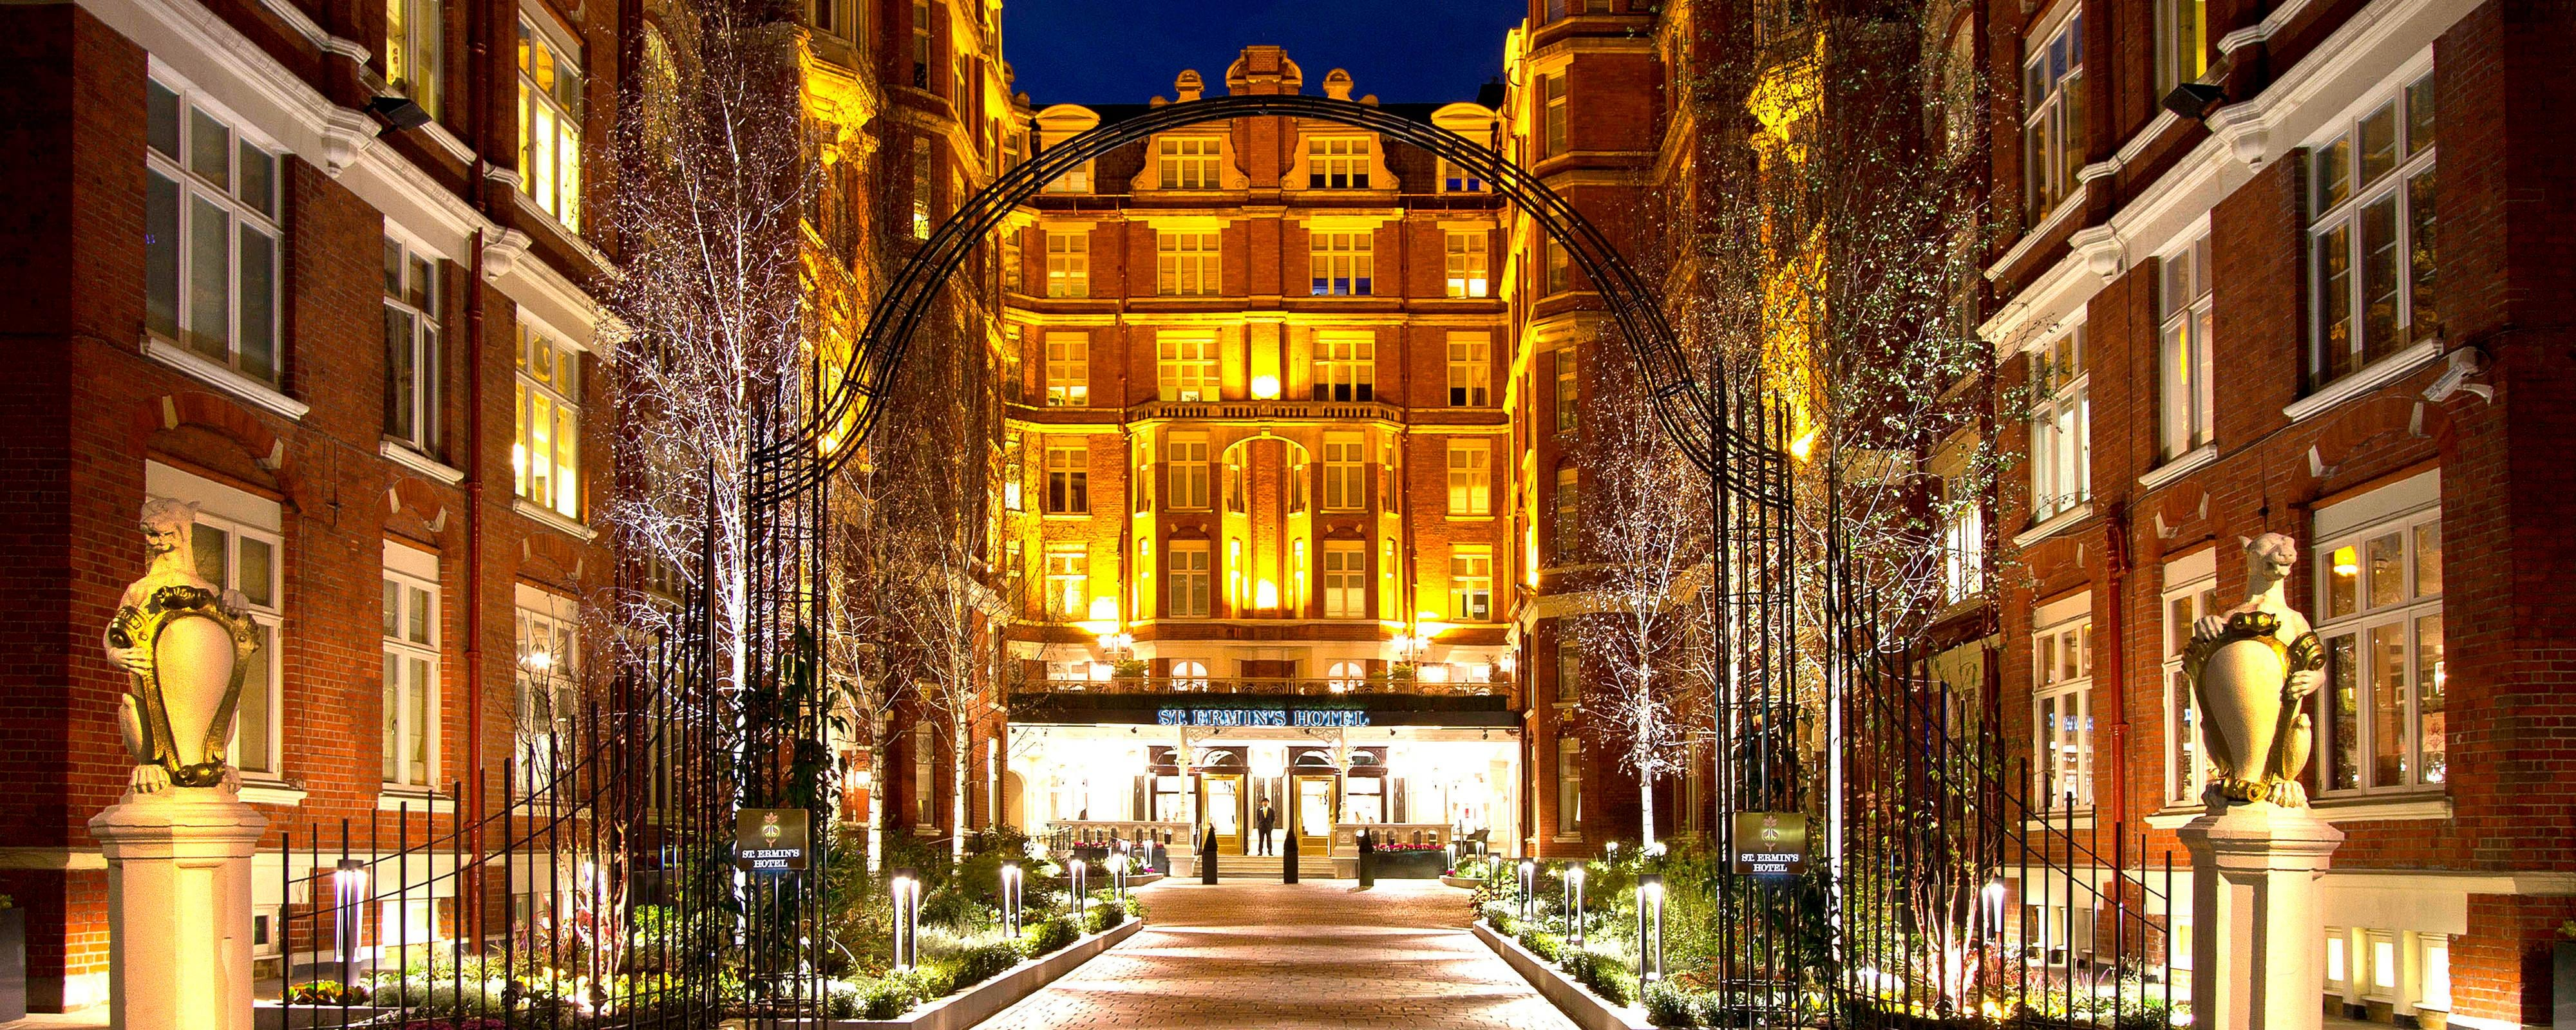 St. Ermin's Hotel Entrance